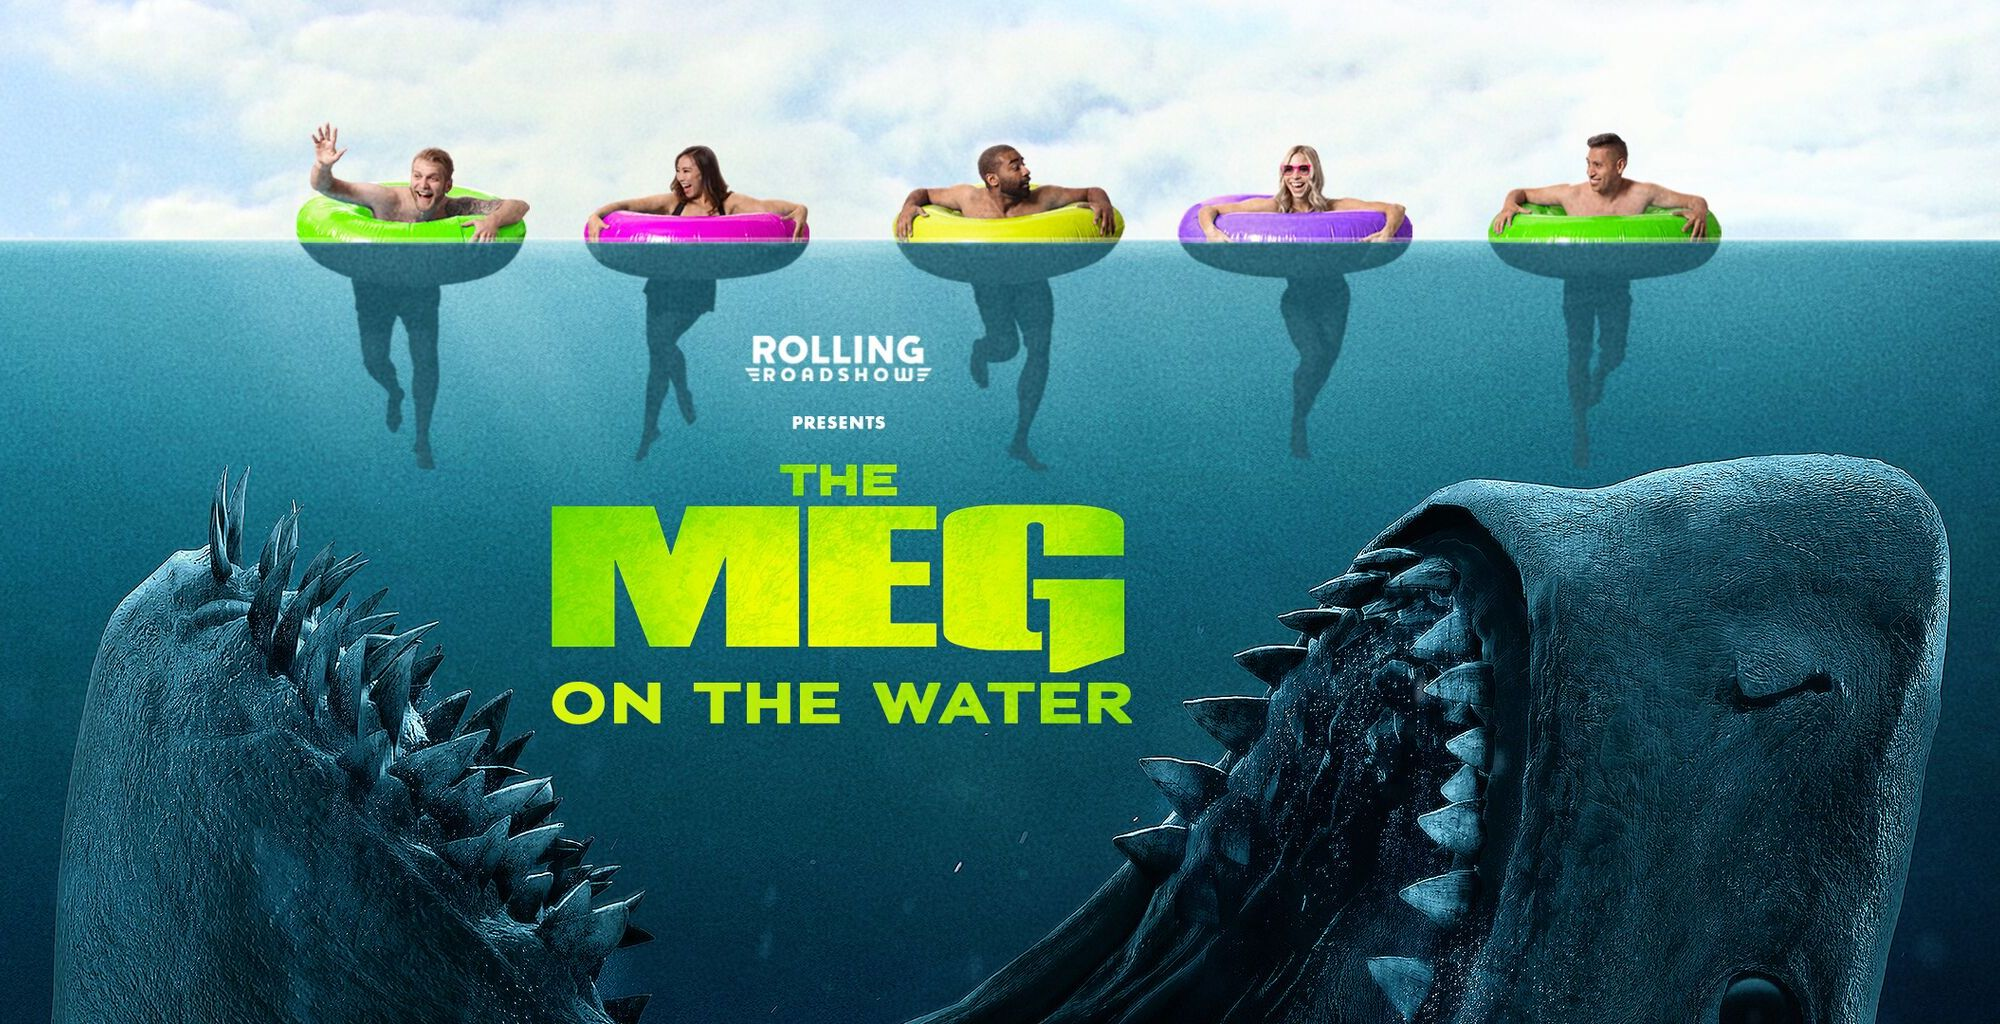 The Meg on the Water